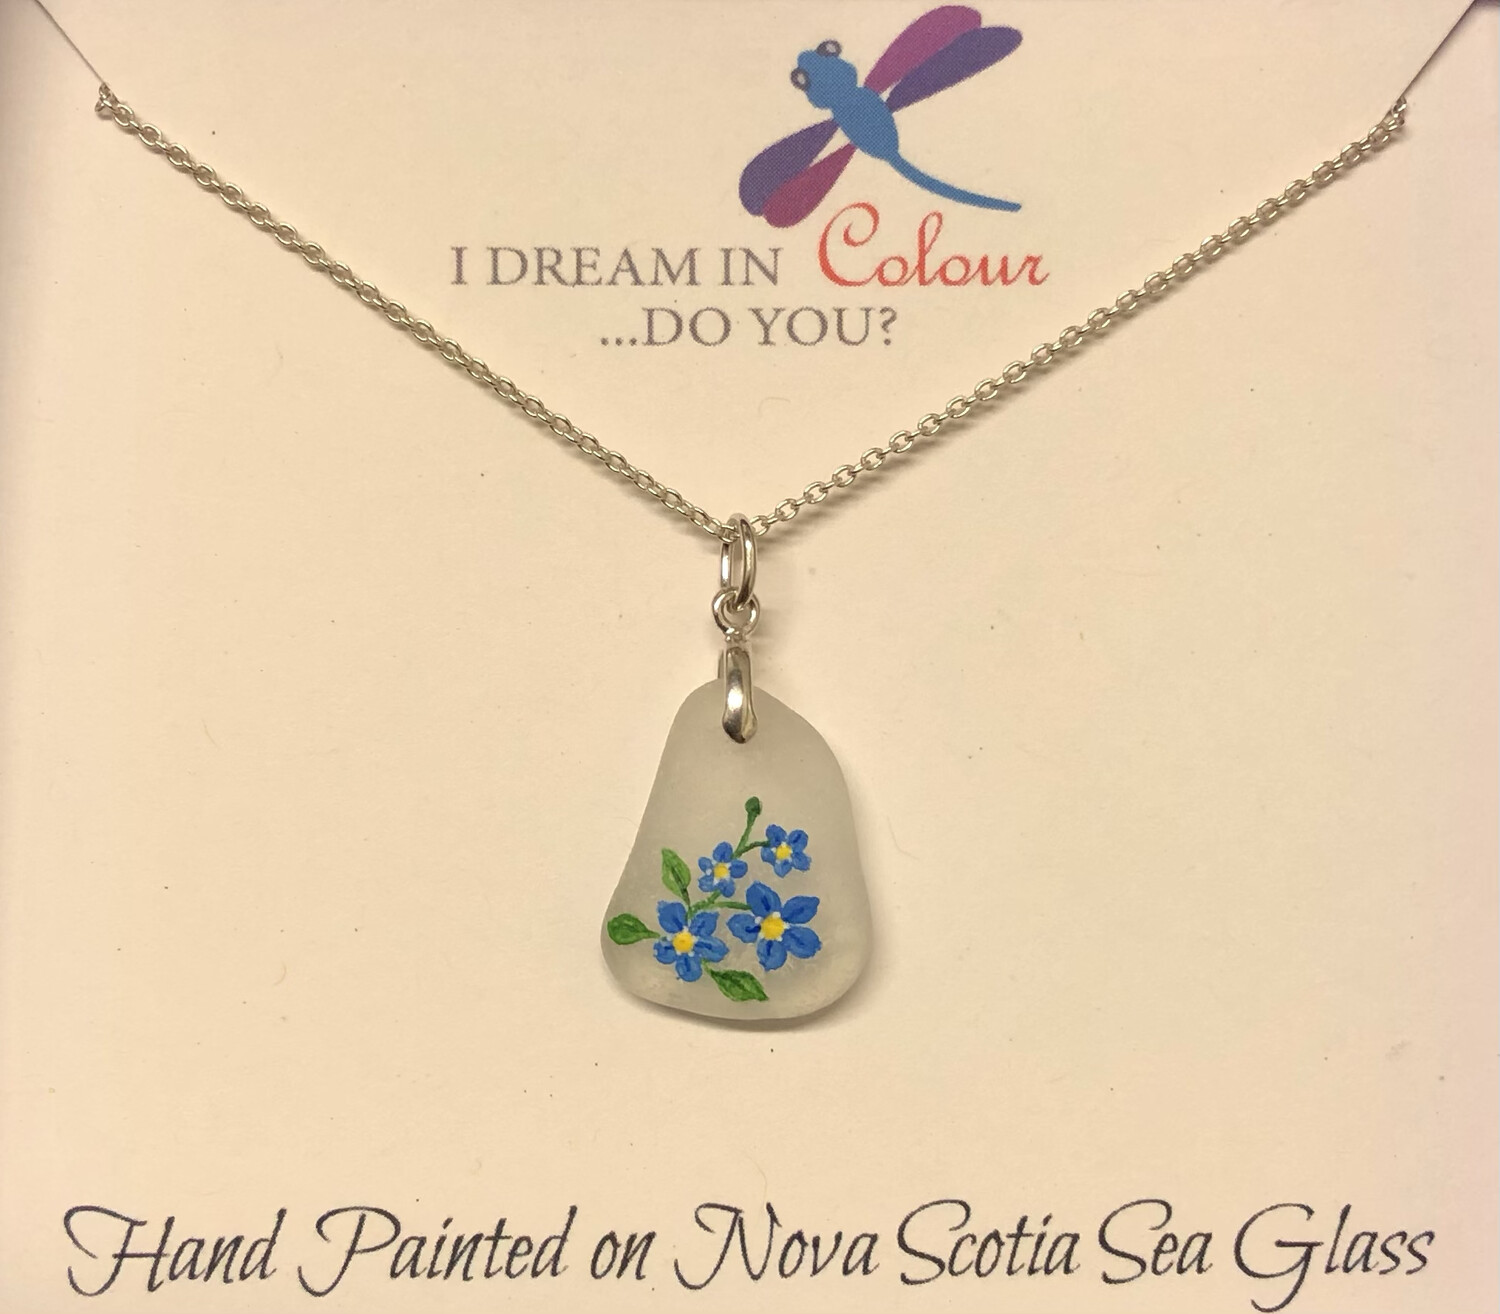 Painted Sea Glass, Forget Me Not - I Dream in Colour